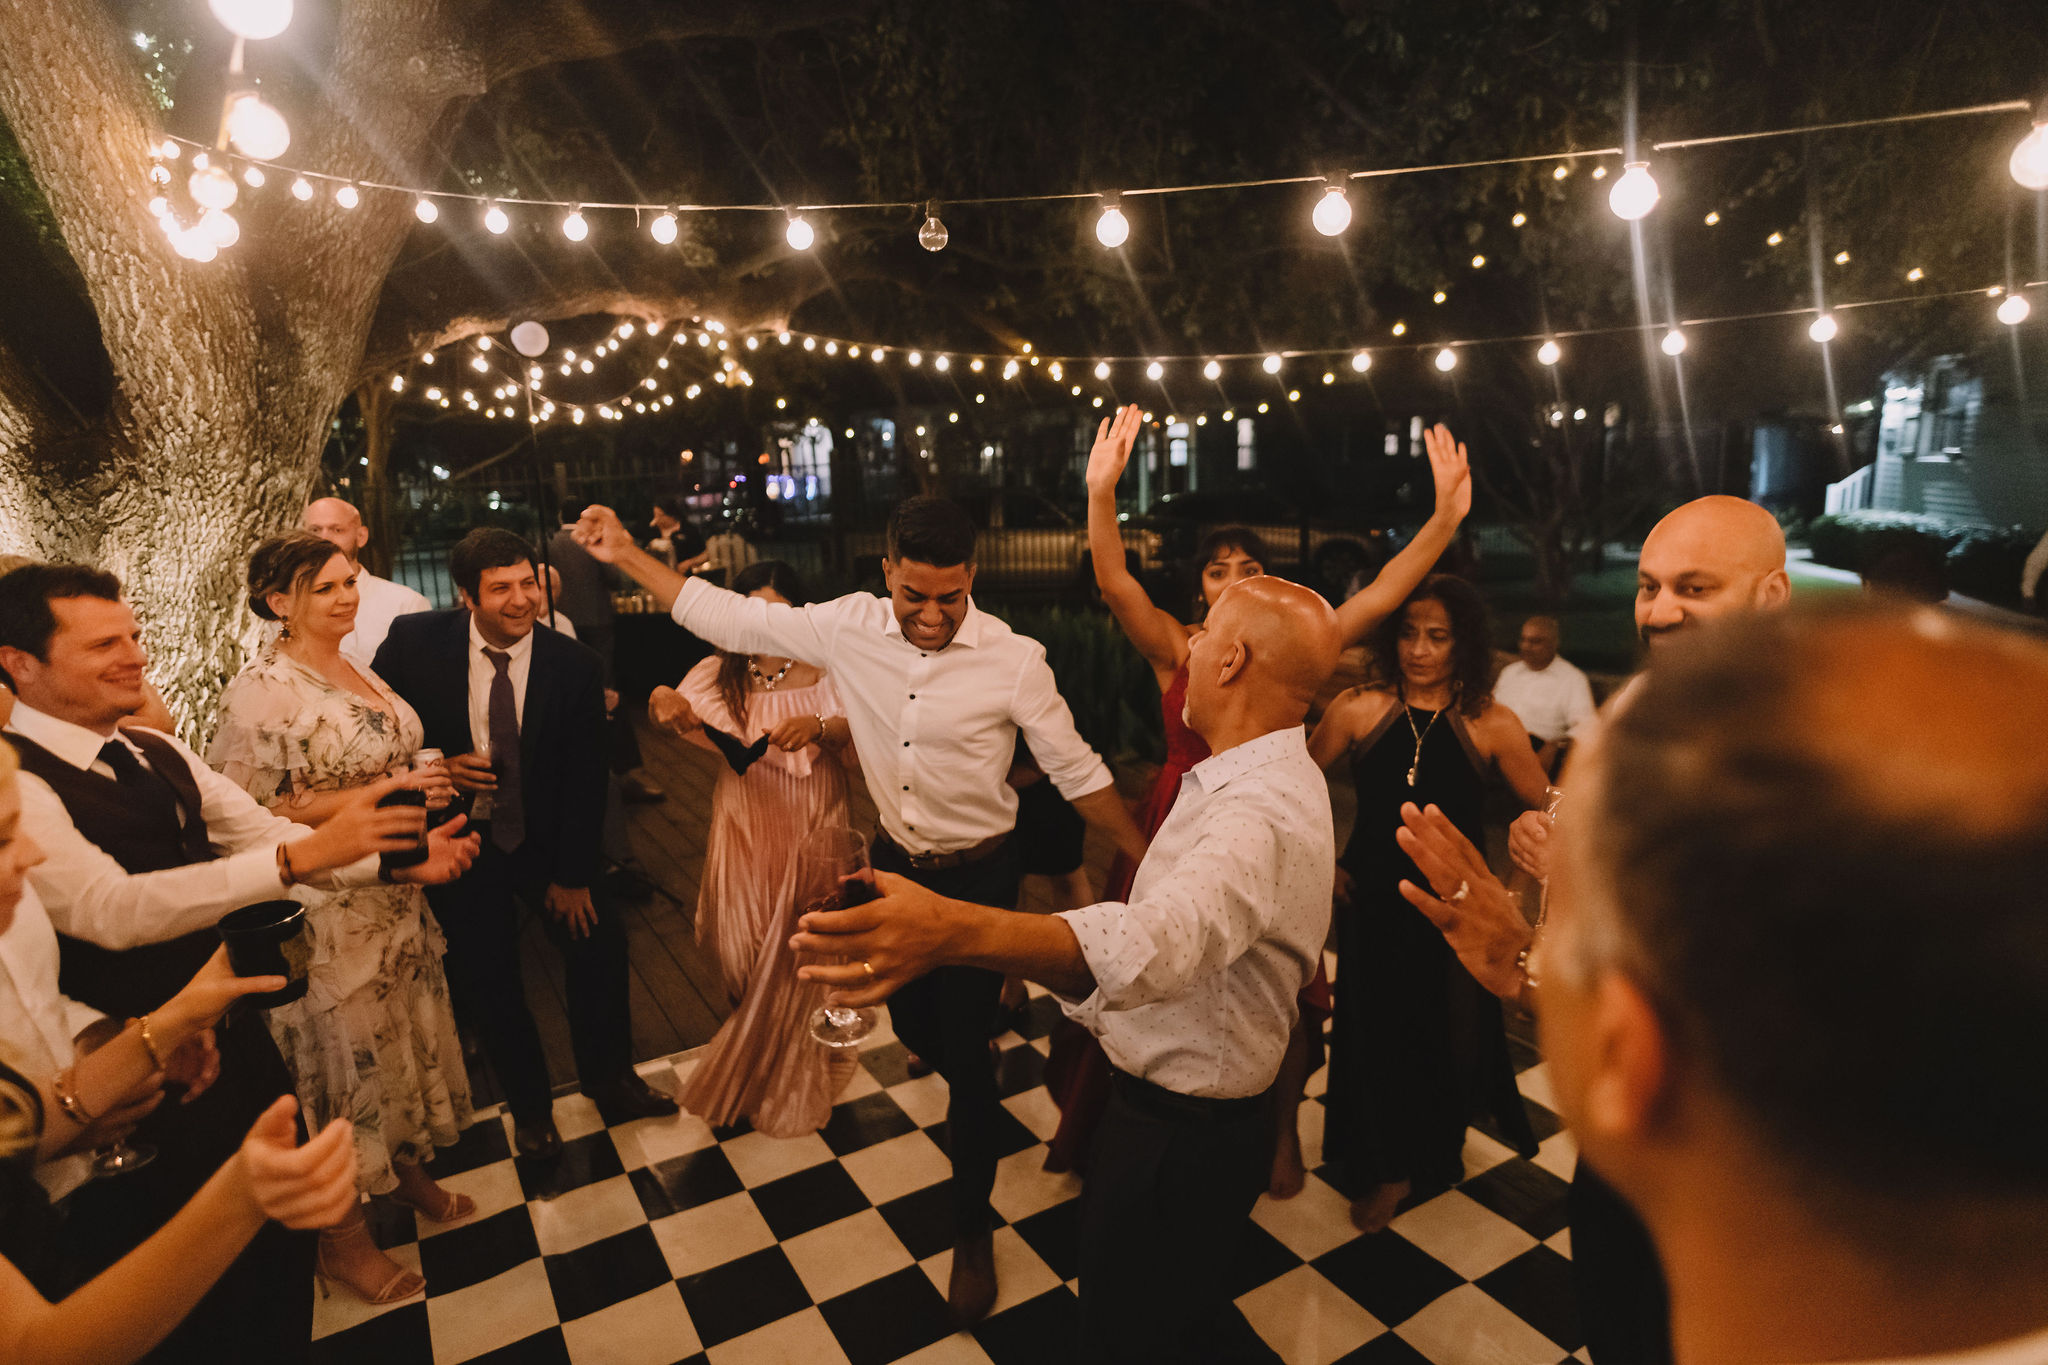 Guests dance and enjoy the reception.